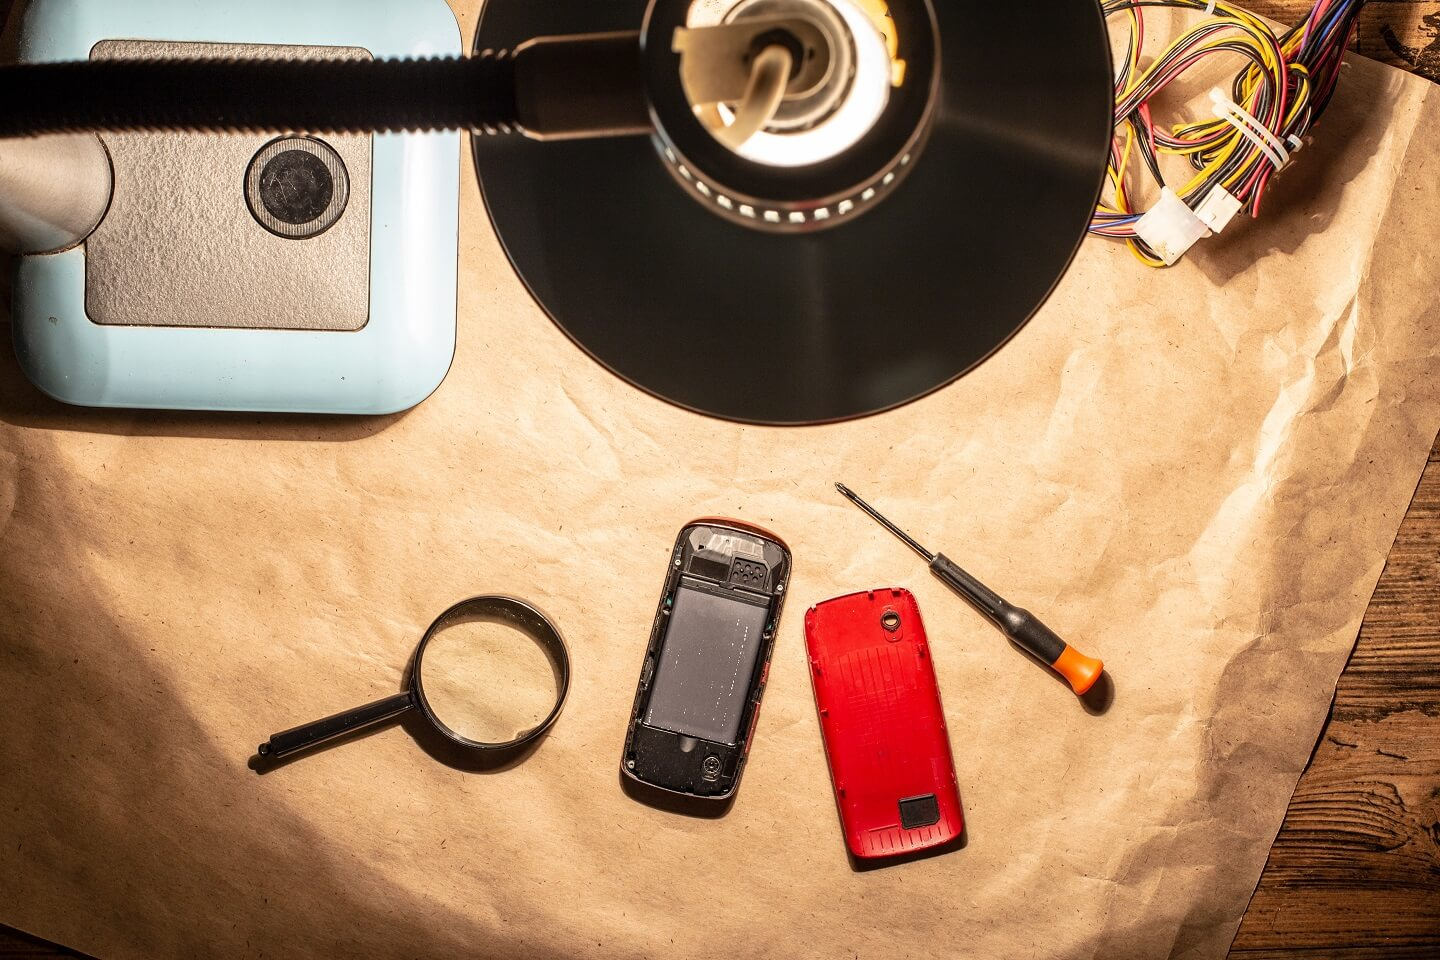 A birds-eye view photo with a lamp lighting a desk with a phone and tools